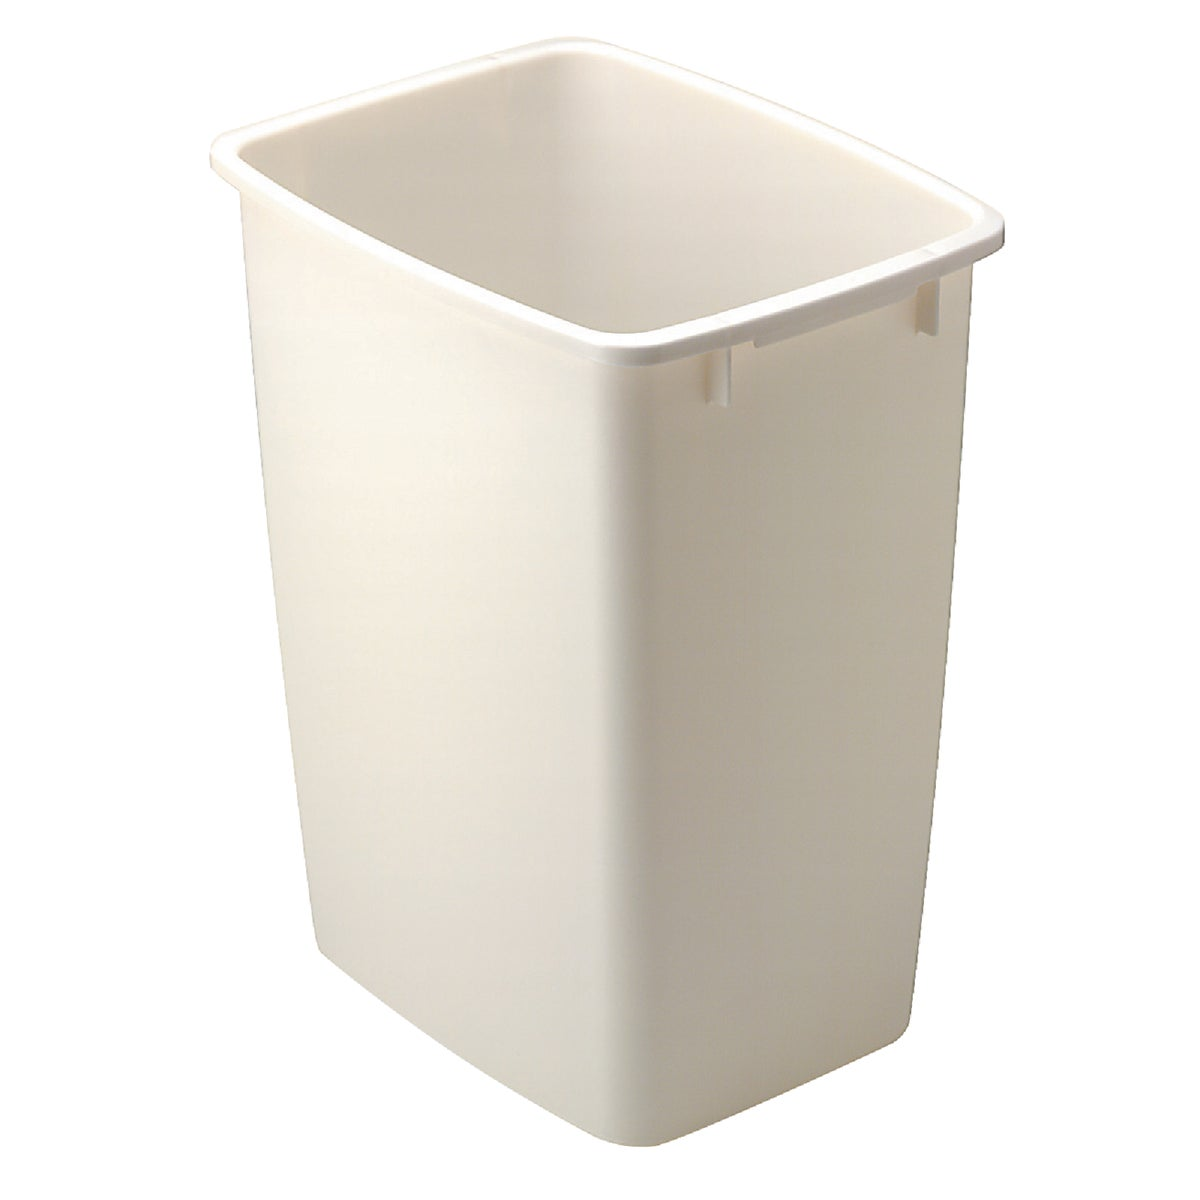 35QT BISQUE WASTEBASKET - 2806TP-BISQU by Rubbermaid Home